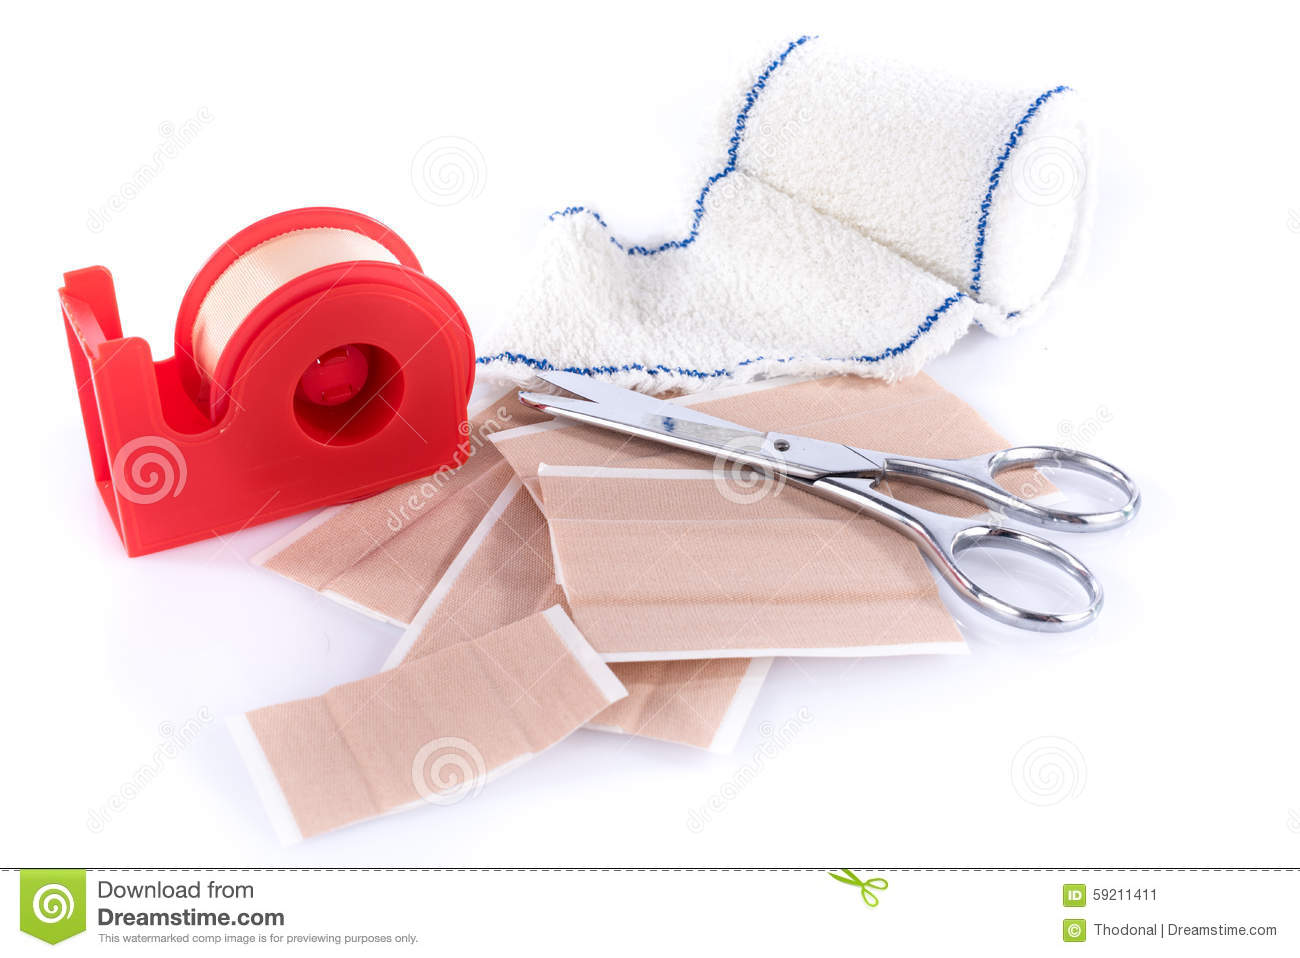 Plasters And Medical Bandage With Scissors Isolated On White